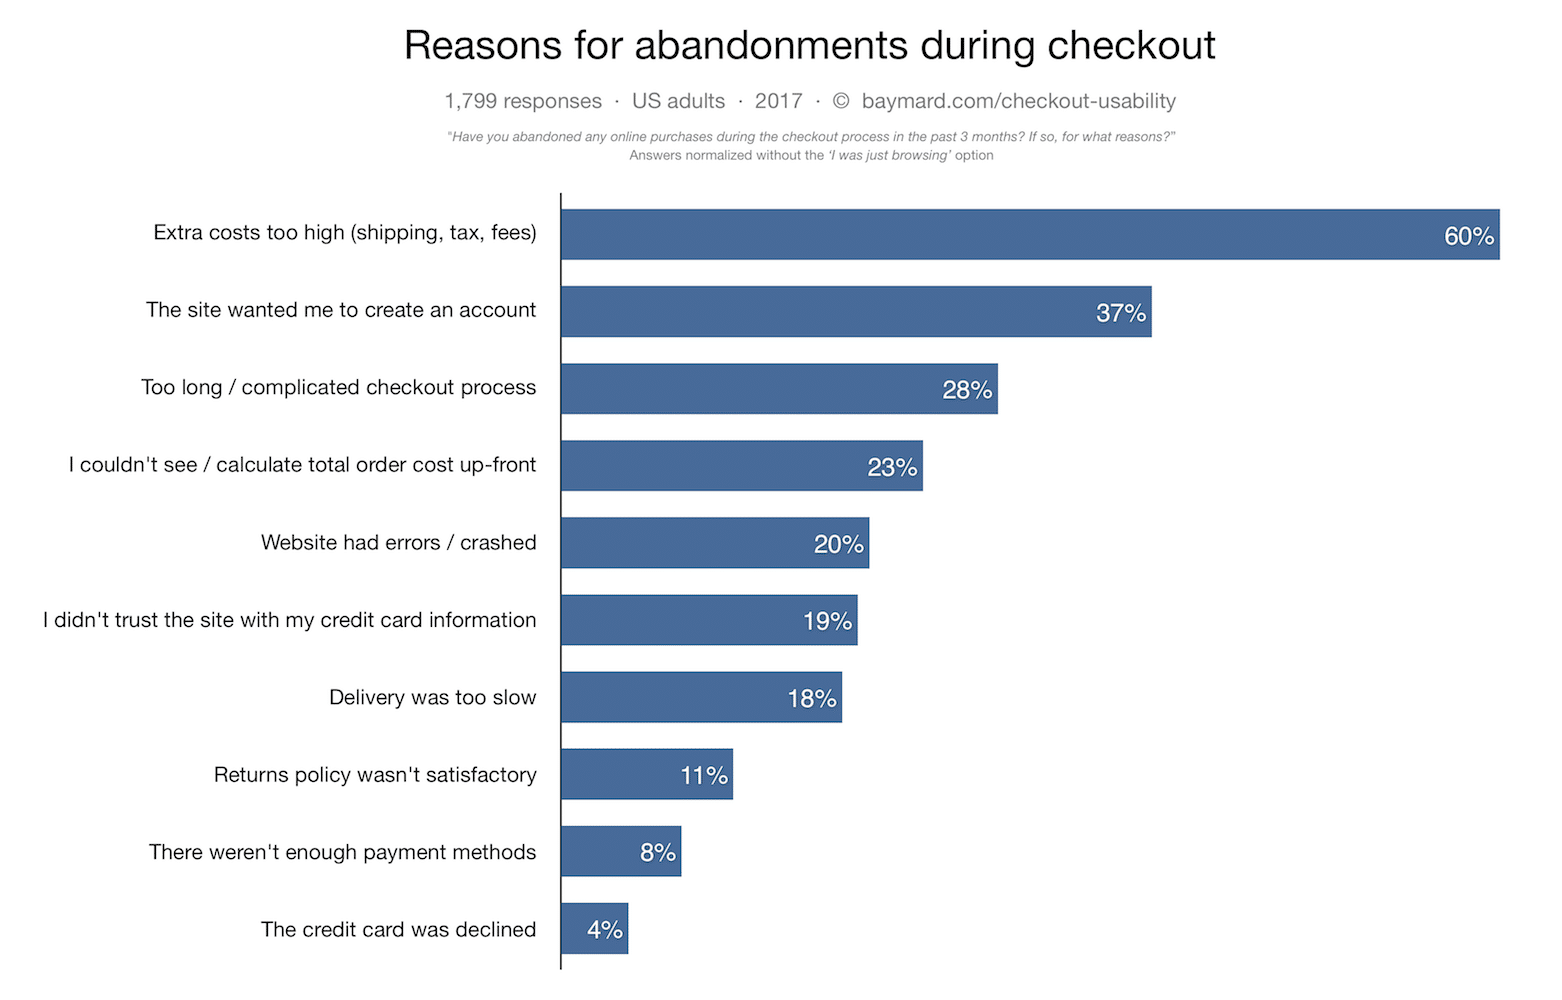 Chart with reasons for abandonments during checkout